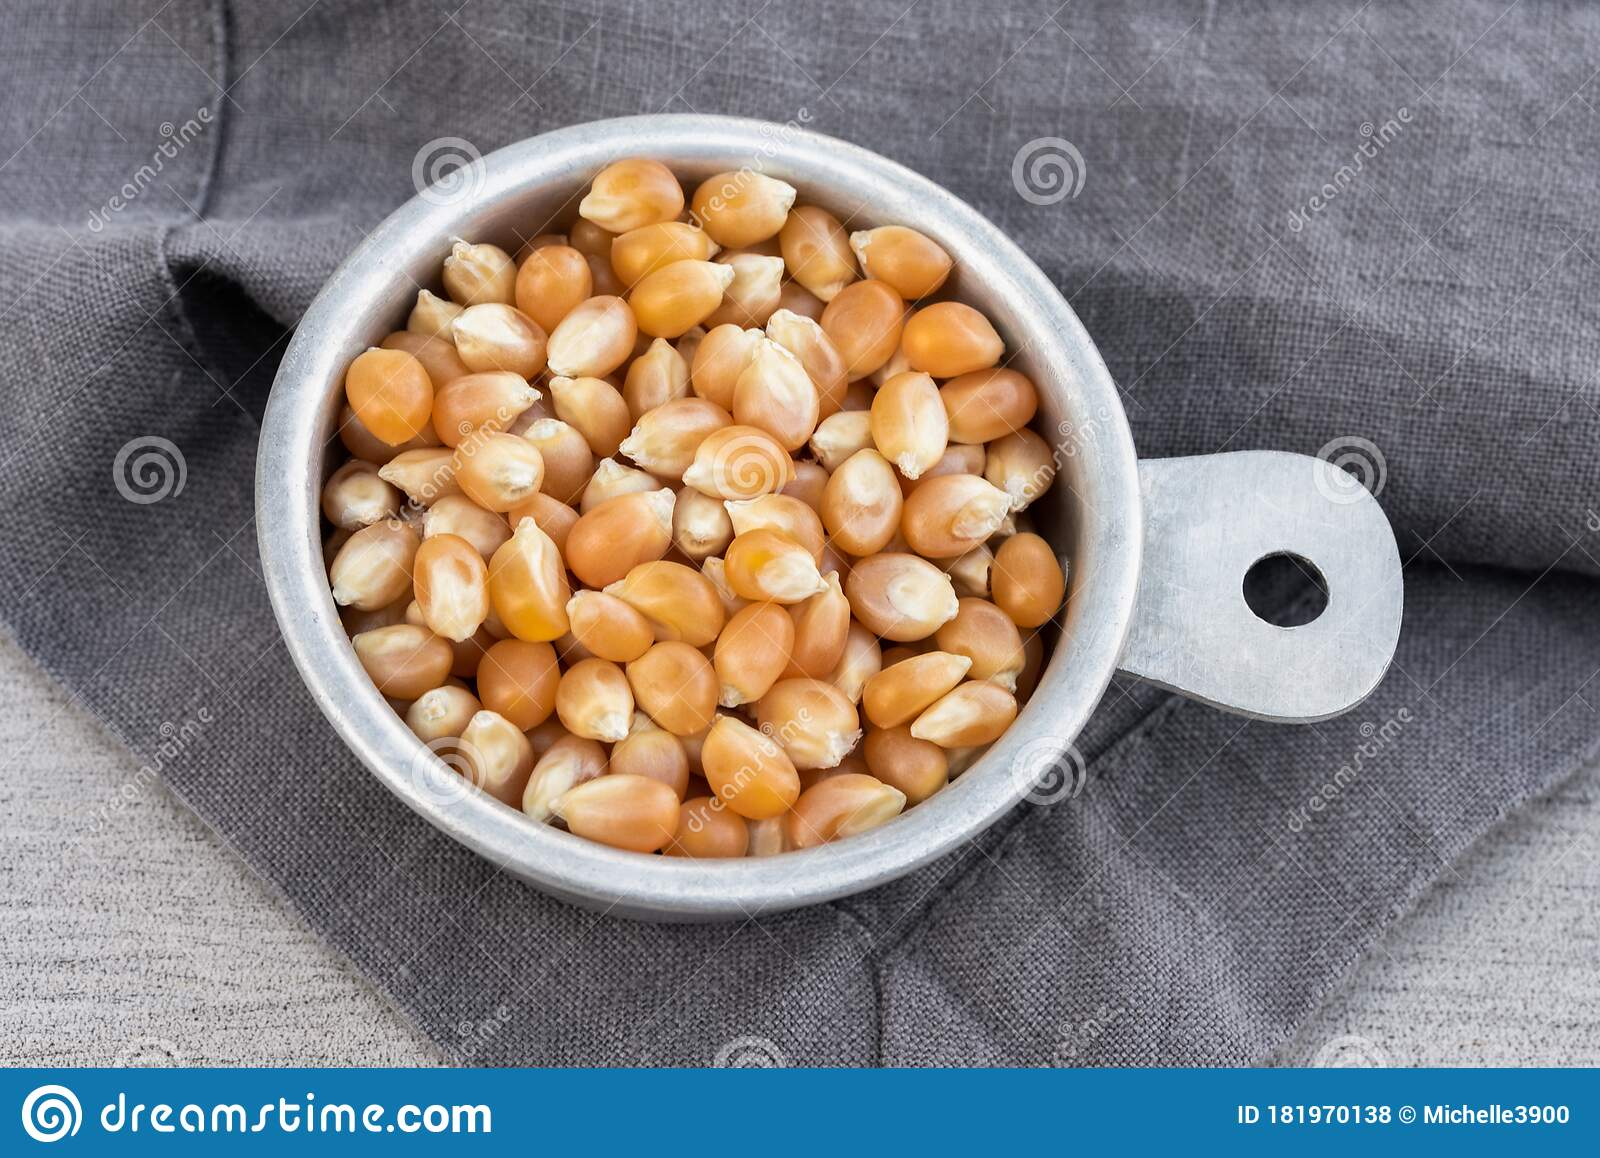 Popcorn Kernels In Measuring Cup Stock Photo - Image of ...